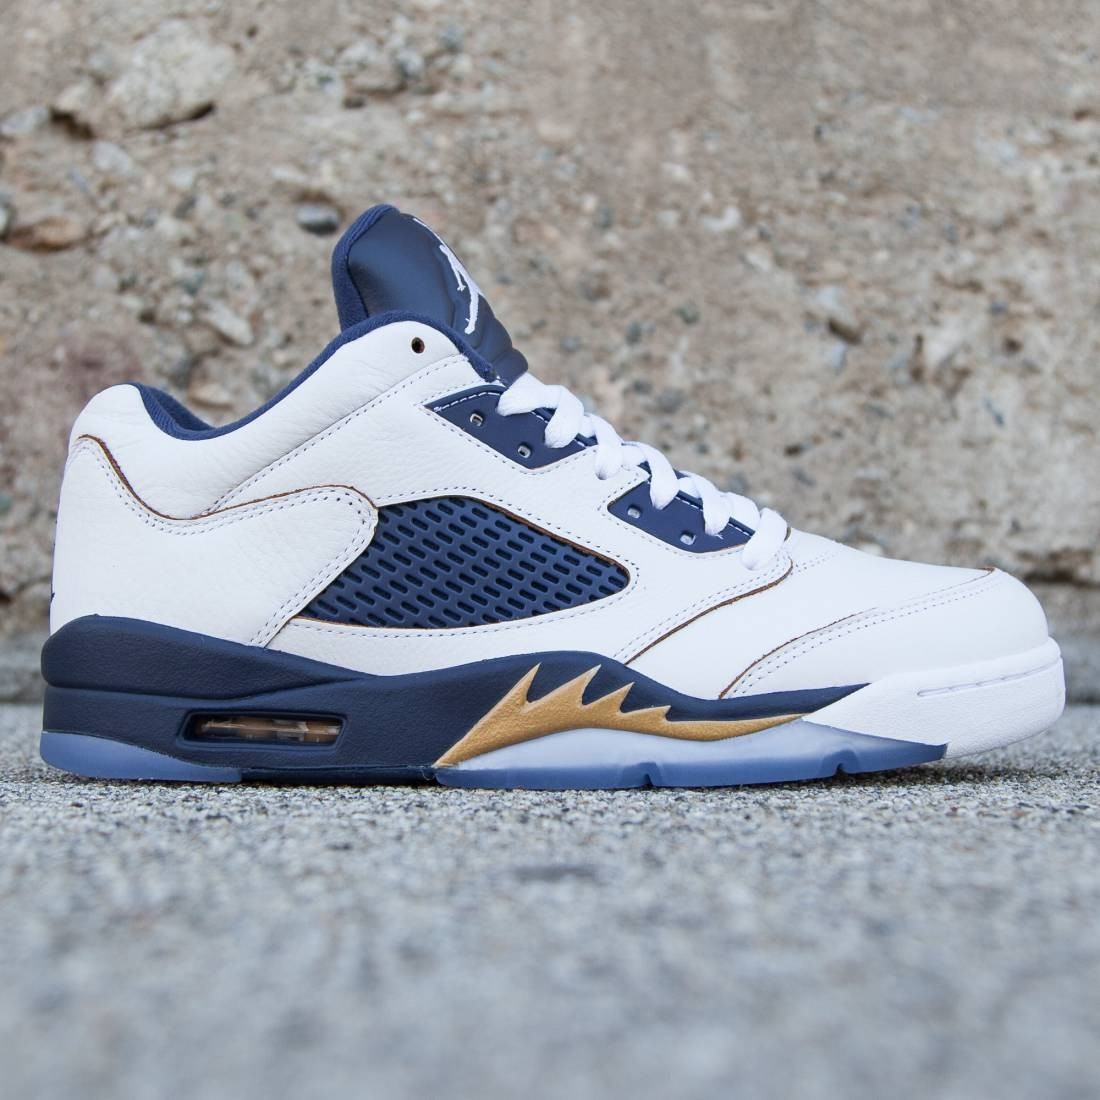 the latest 995e5 a49a3 Air Jordan 5 Retro Low Men (white / metallic gold star / midnight navy)